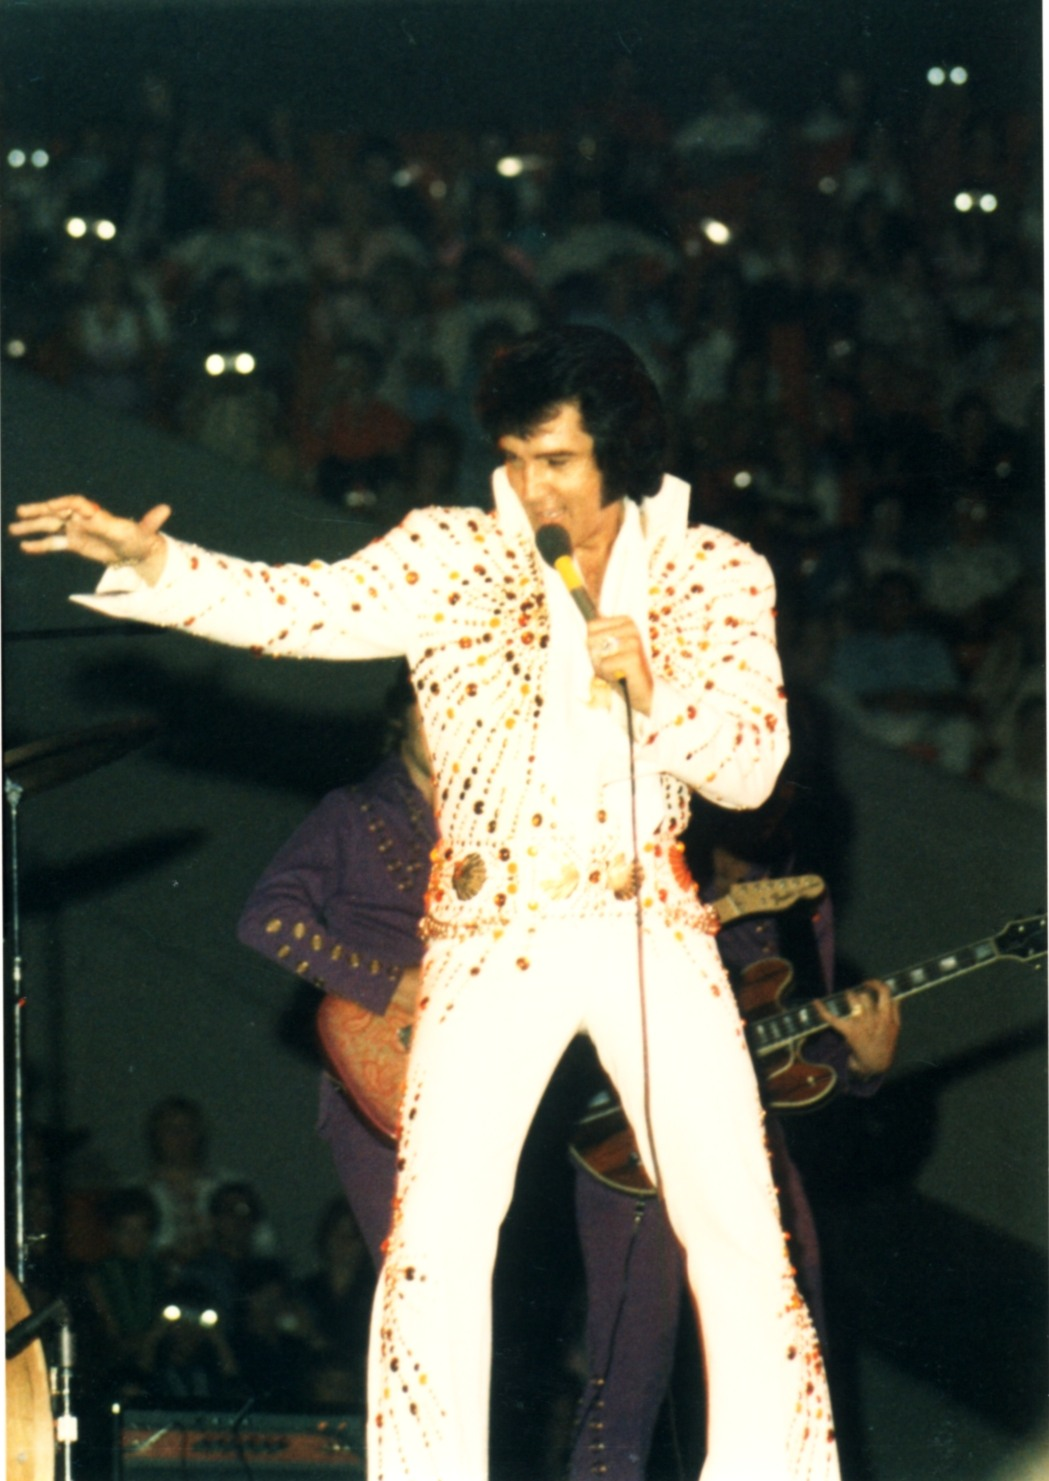 https://i0.wp.com/www.elvisconcerts.com/pictures/s73062101.jpg